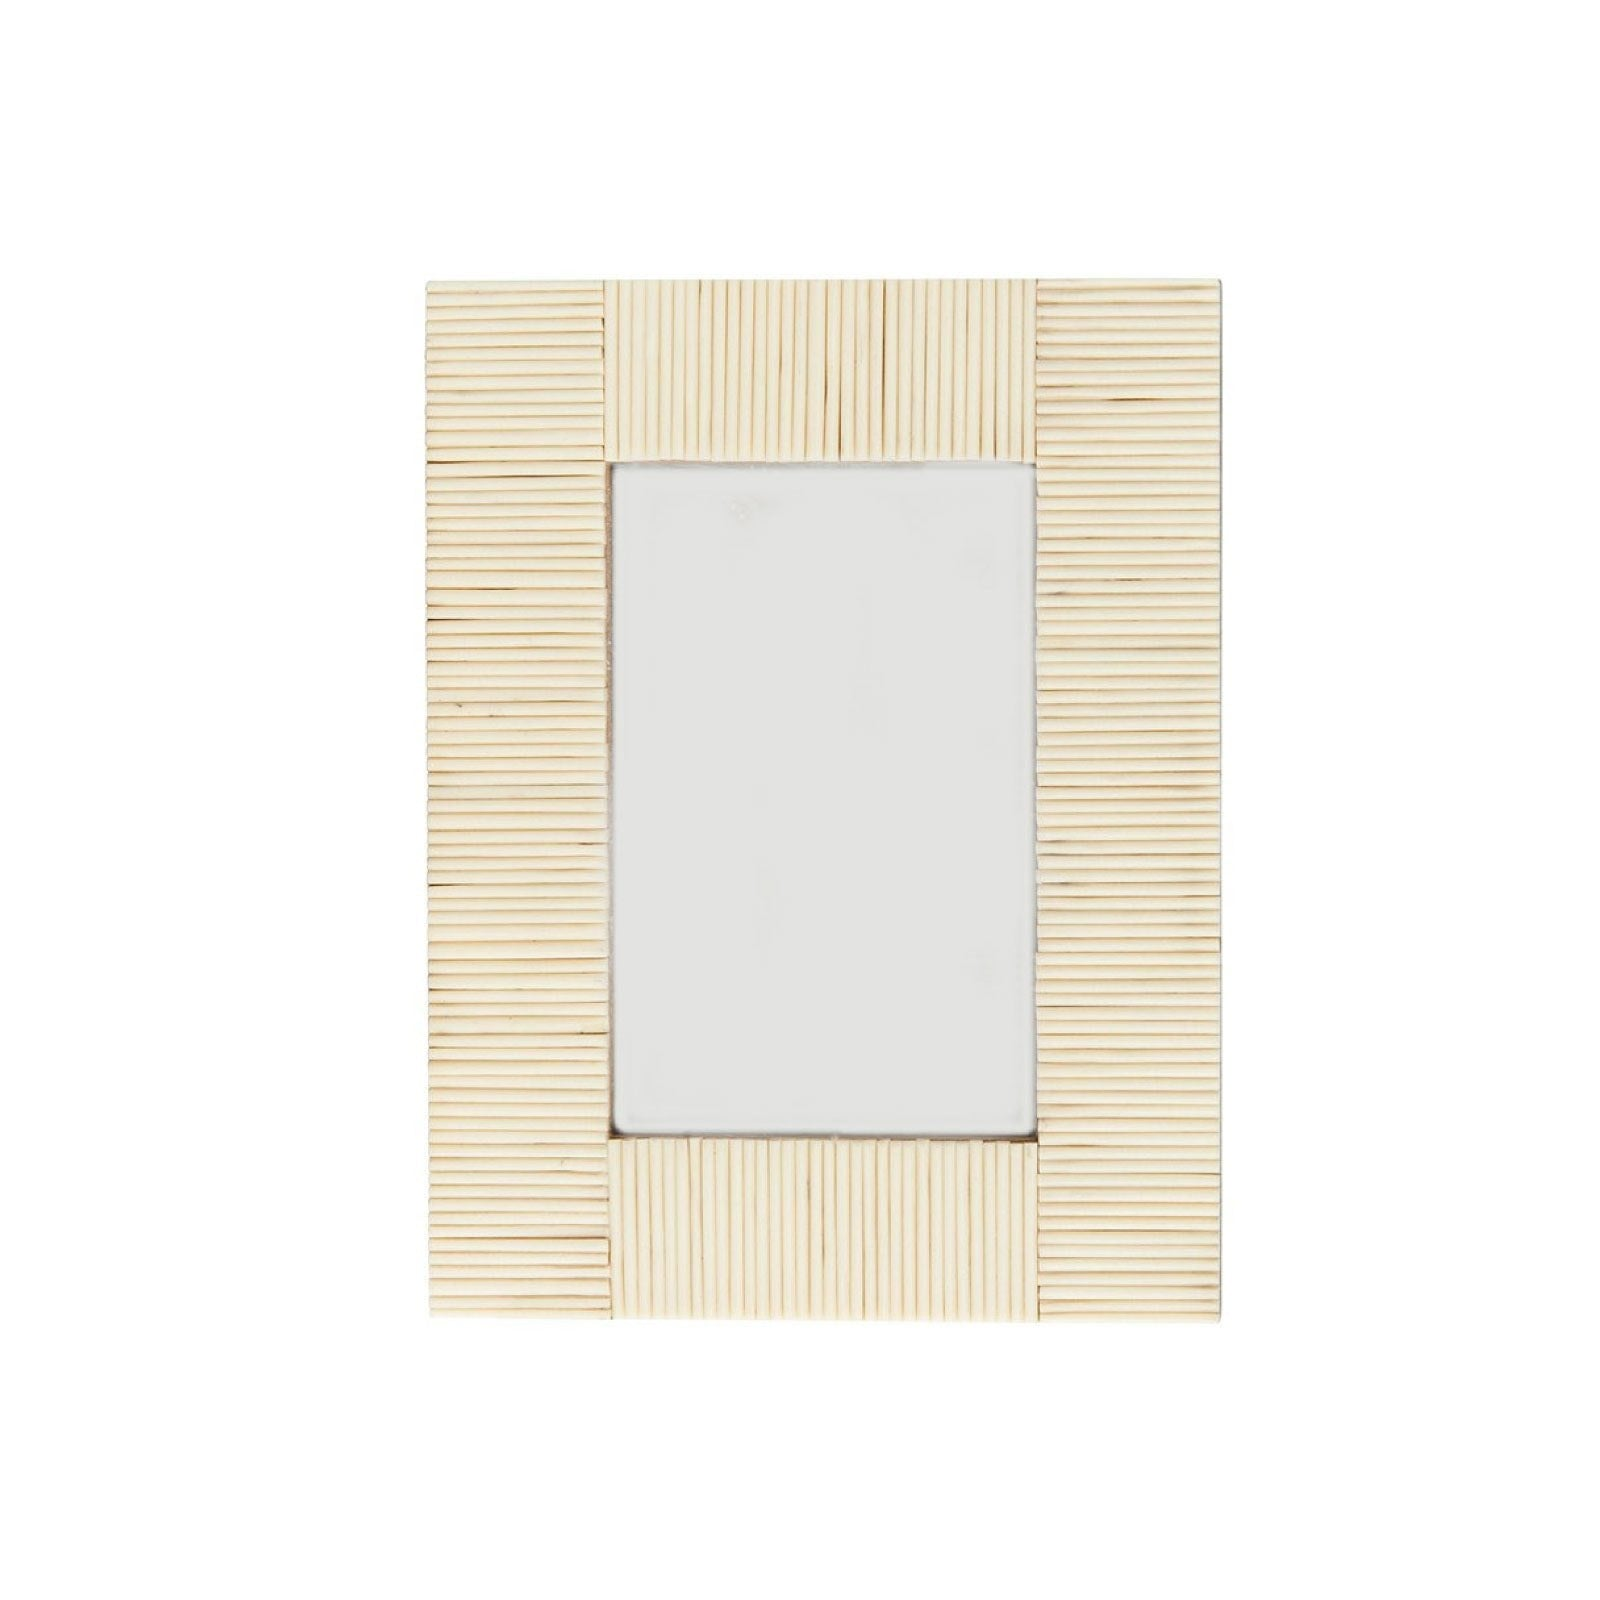 Reeded Bone Frame